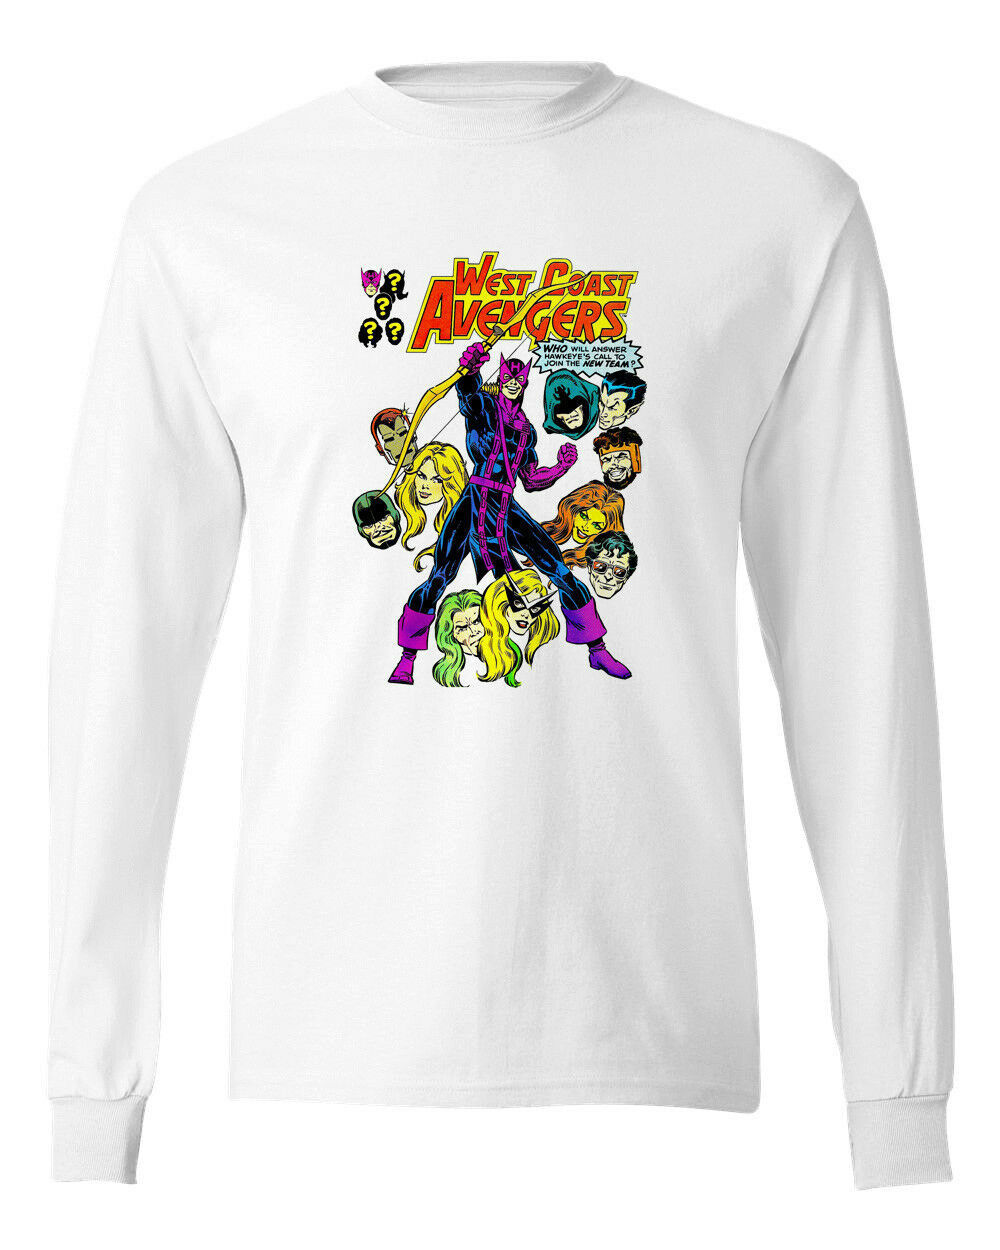 West Coast Avengers Long Sleeve T-shirt Bronze Age comic books 100% cotton tee